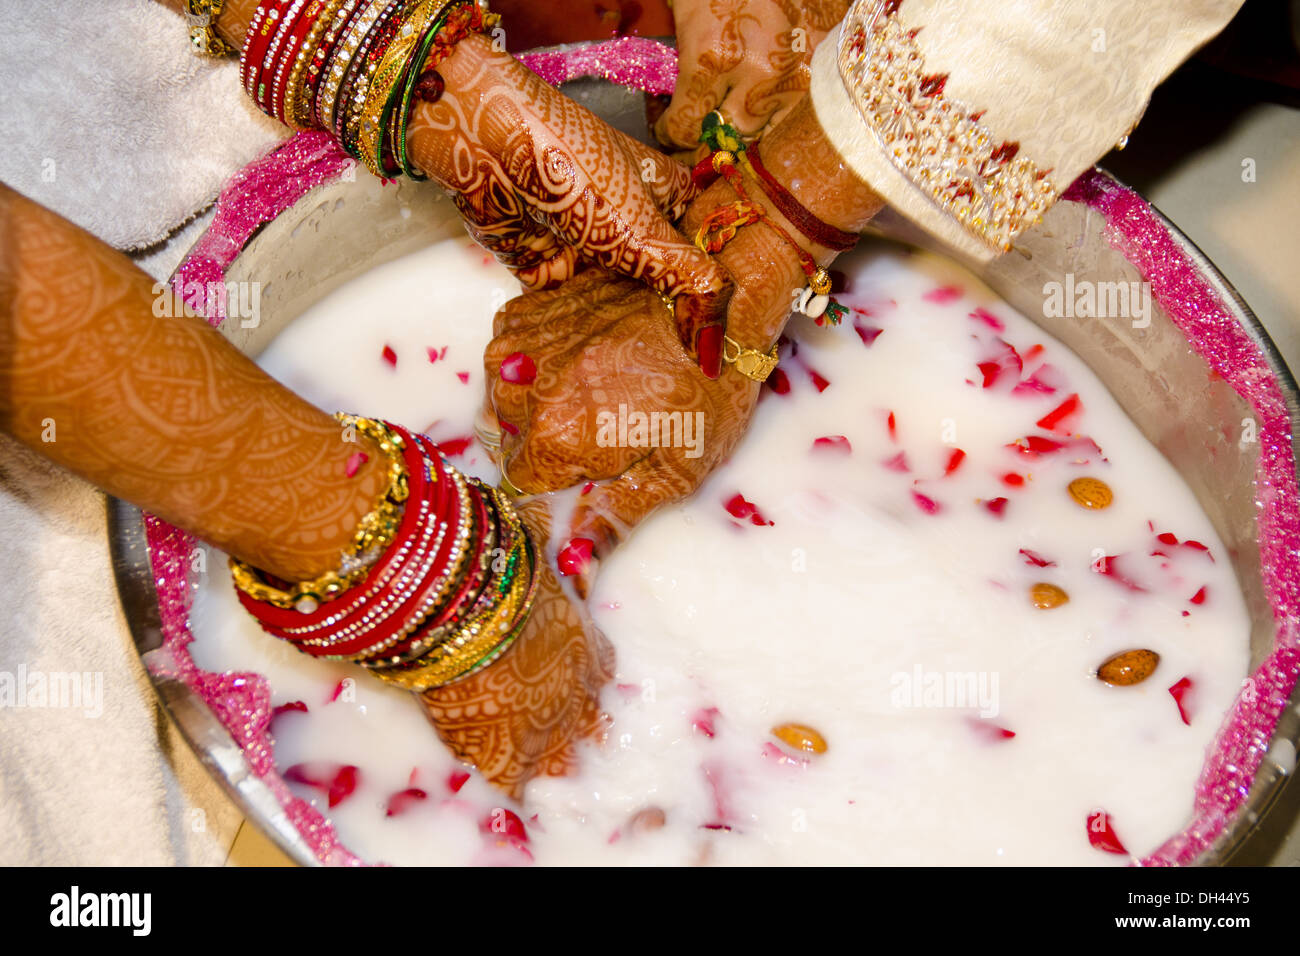 Indian Wedding Pots Stock Photos & Indian Wedding Pots Stock Images